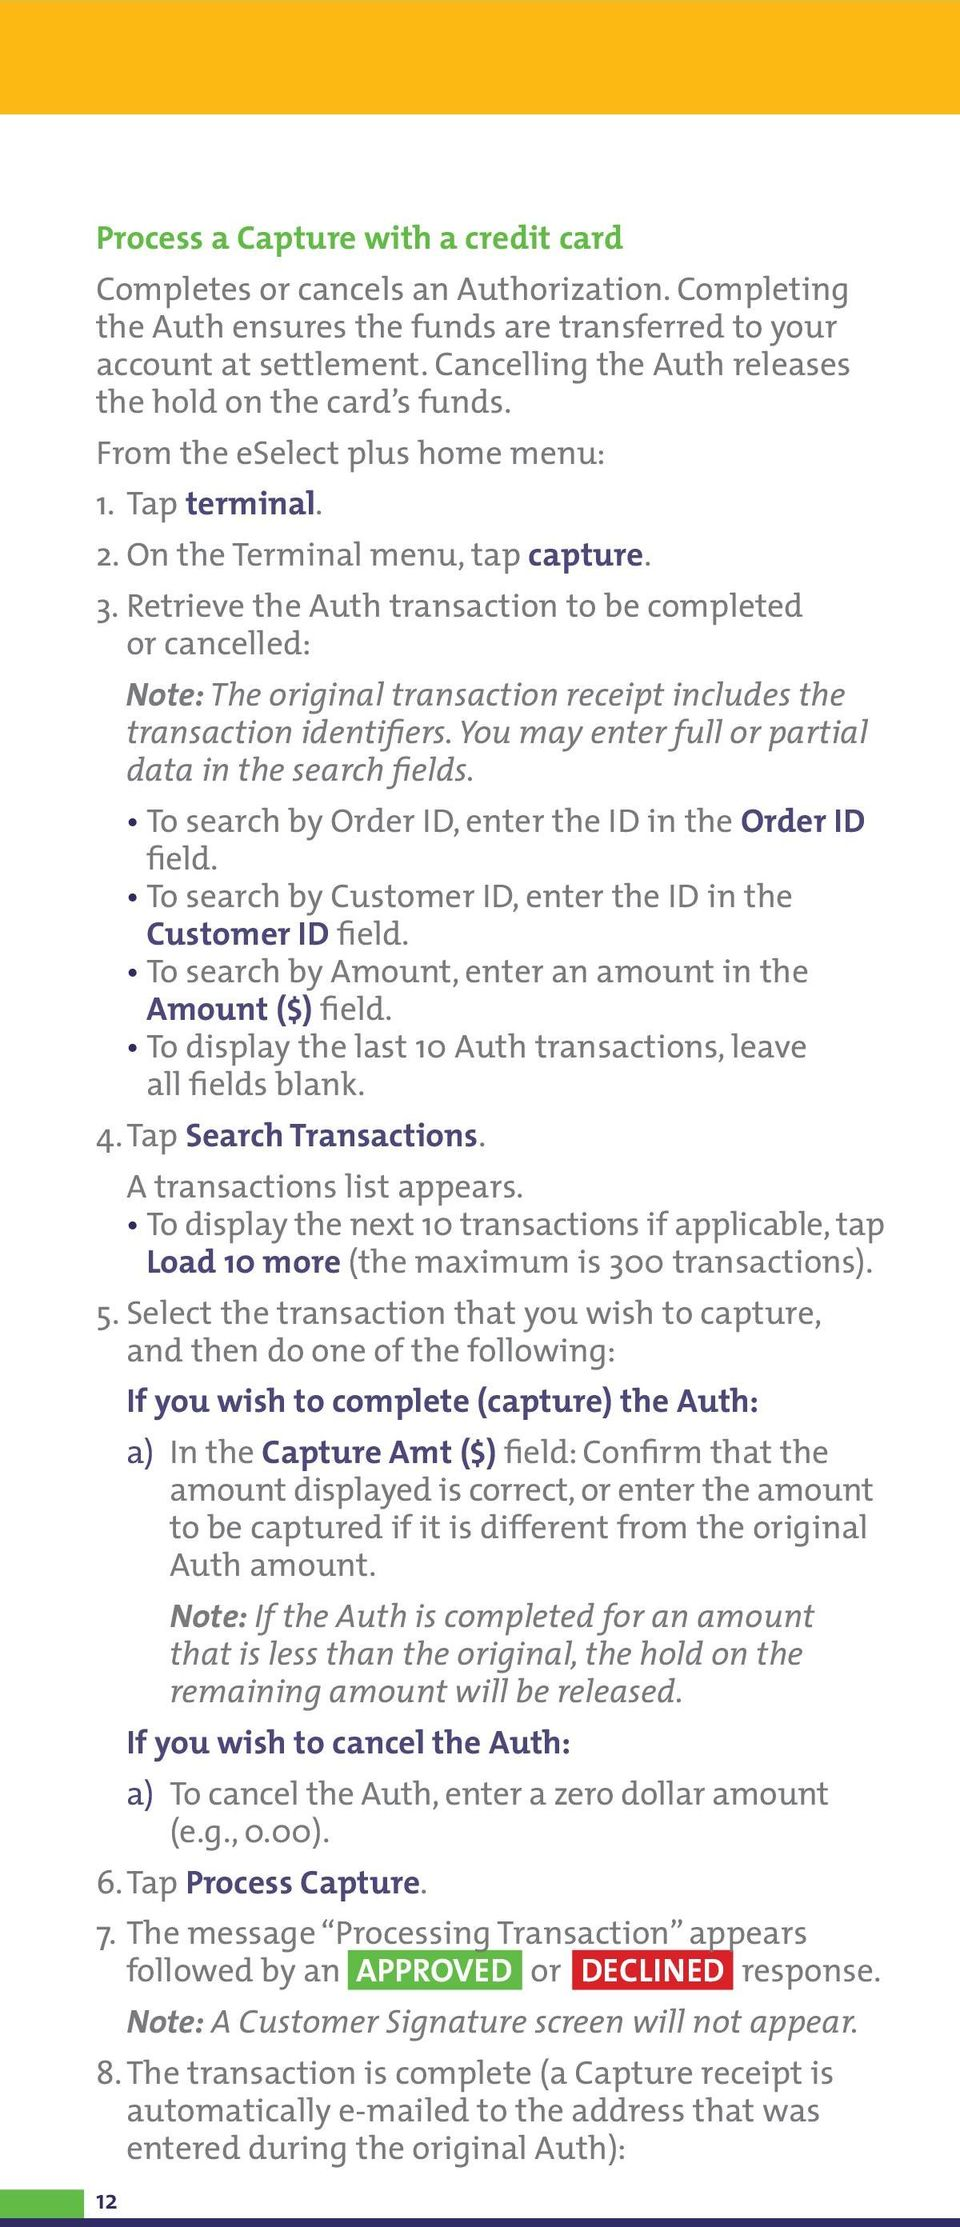 Retrieve the Auth transaction to be completed or cancelled: Note: The original transaction receipt includes the transaction identifiers. You may enter full or partial data in the search fields.